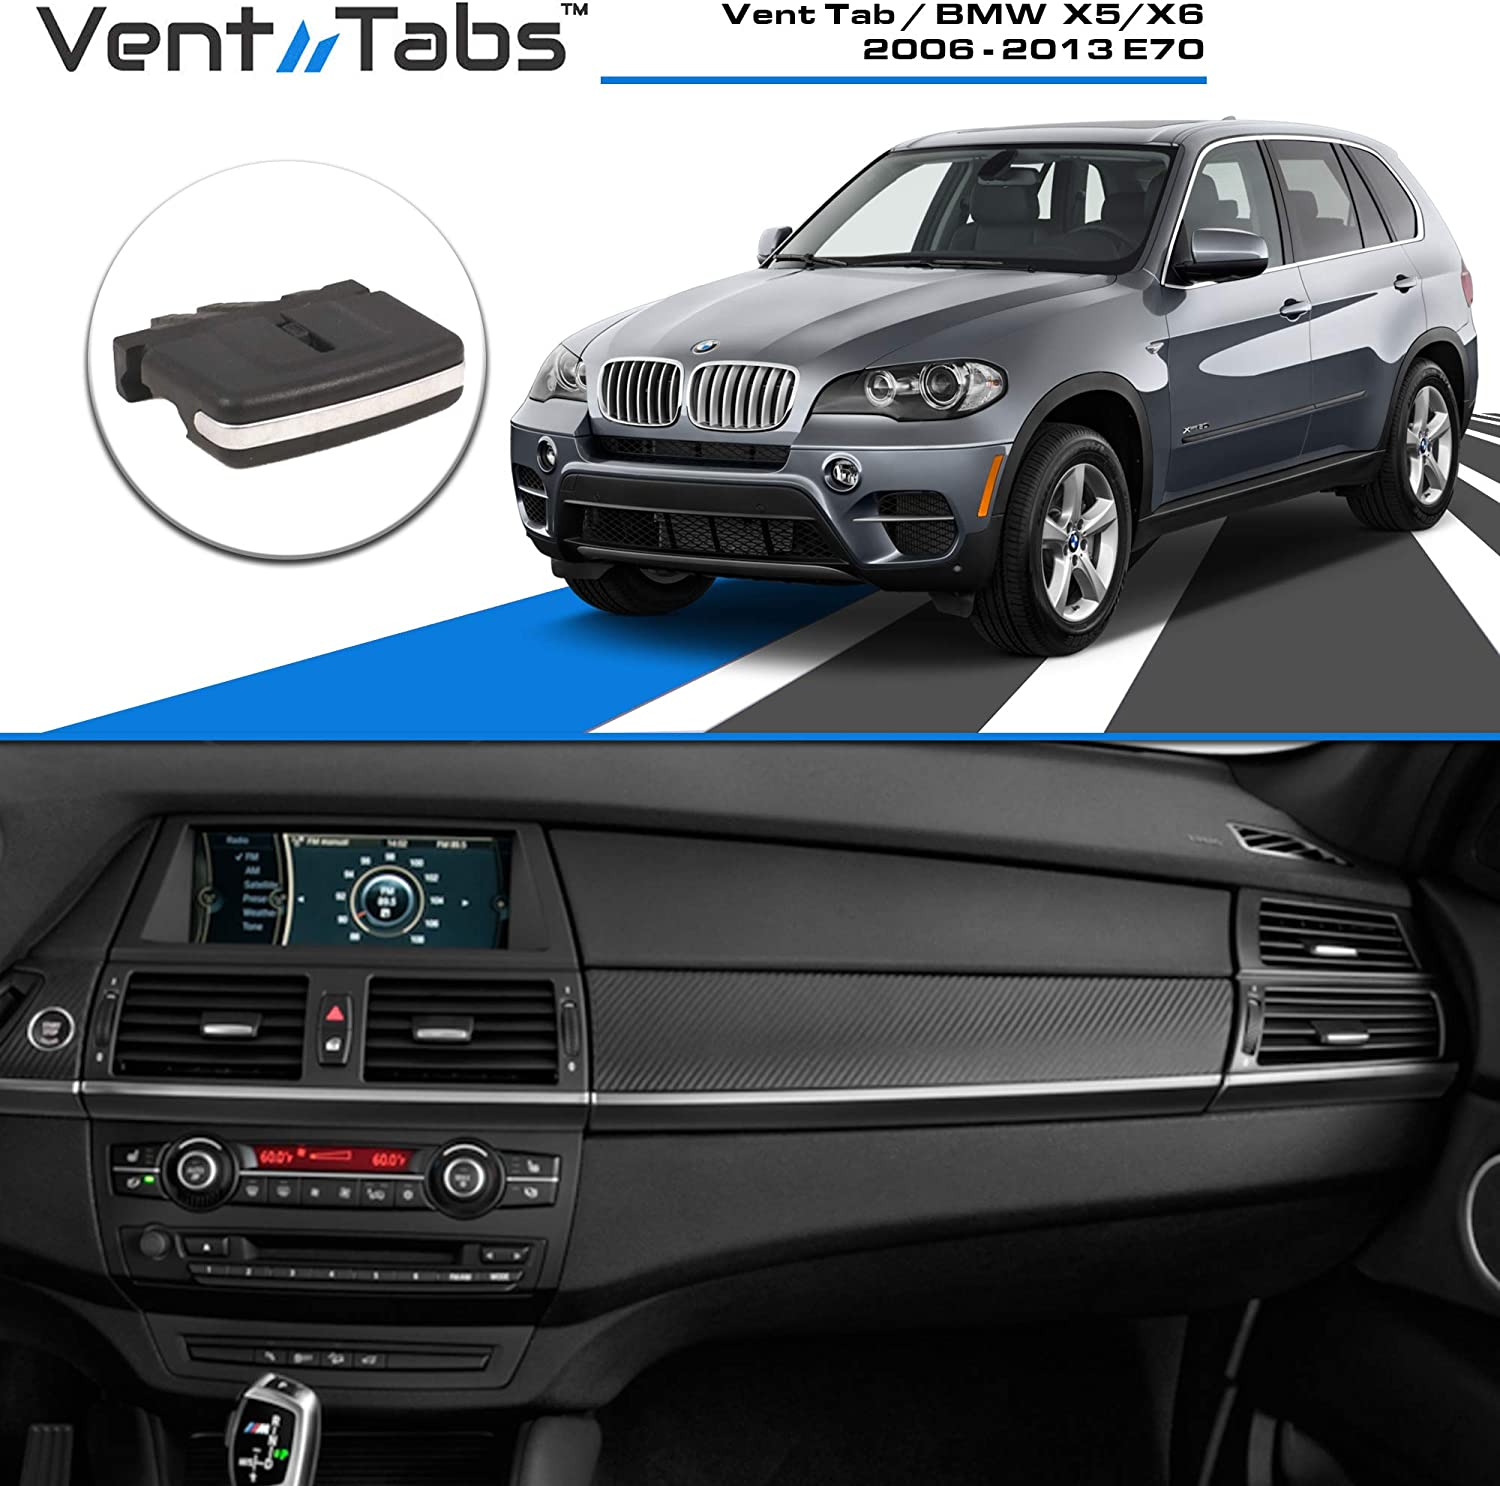 Single Vent Tab Injection Moulded Replacement Fits BMW 3 Series E90//E91//E92//E93